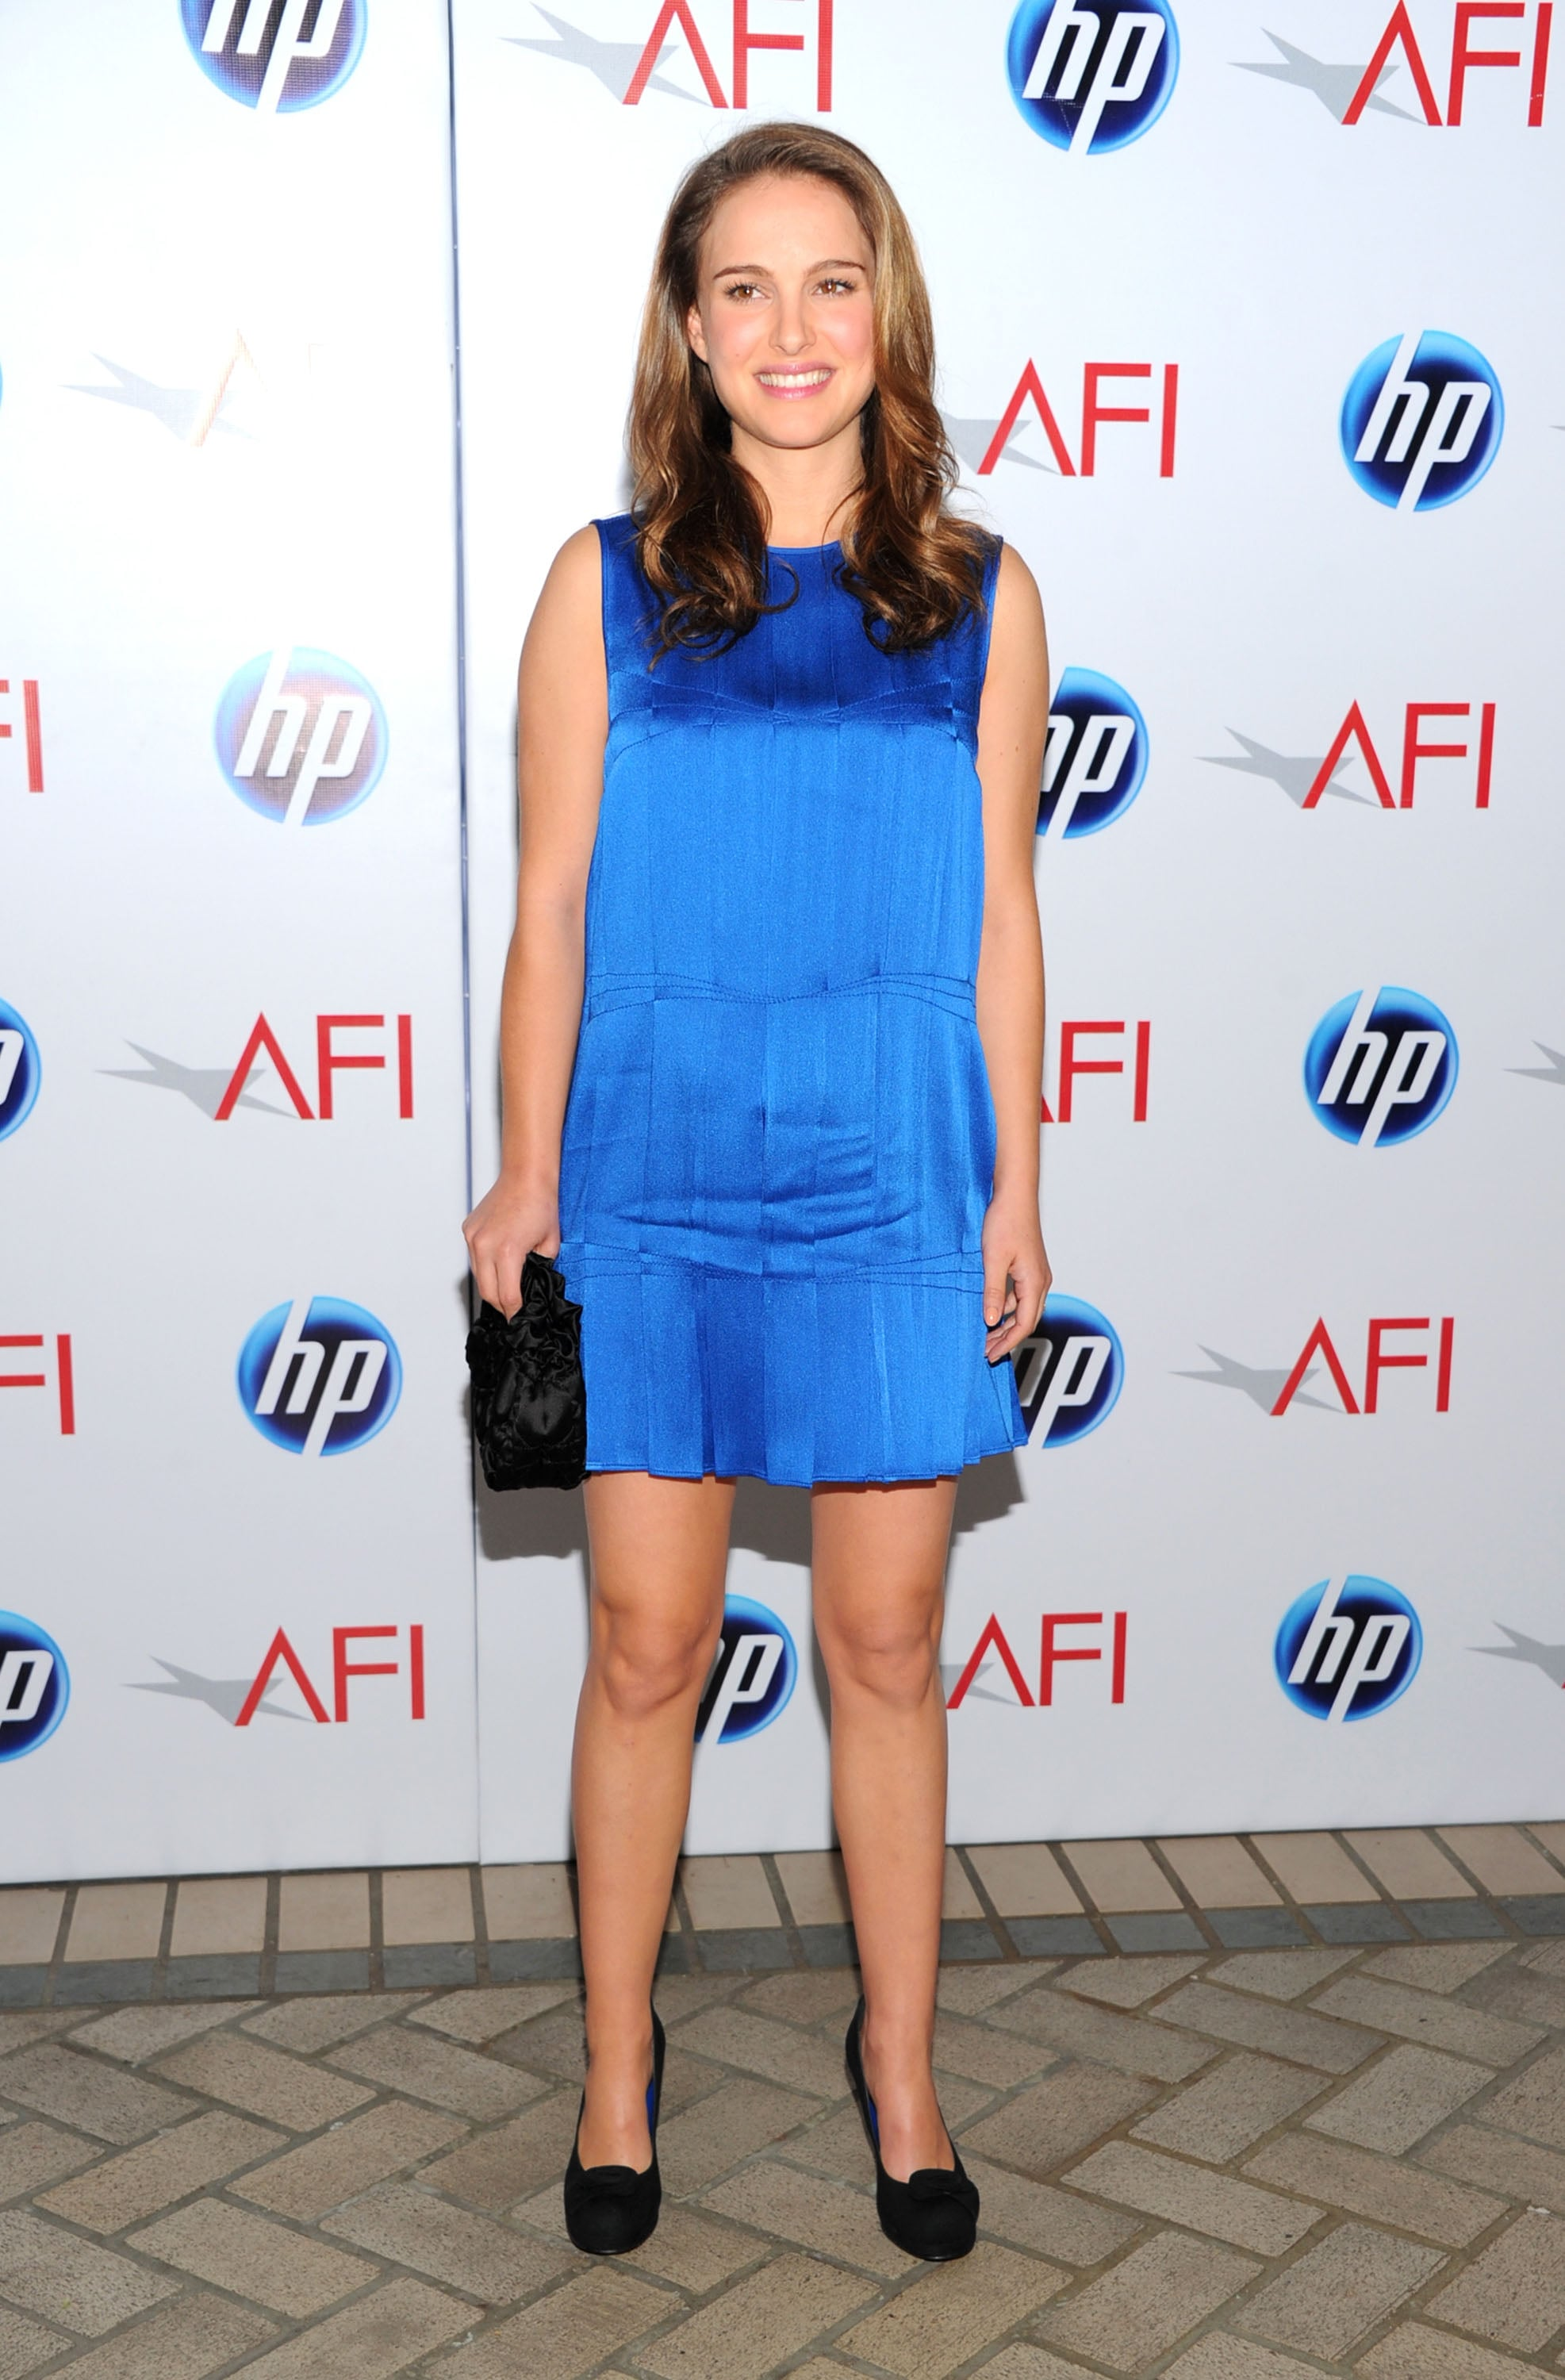 January 2011: AFI Awards